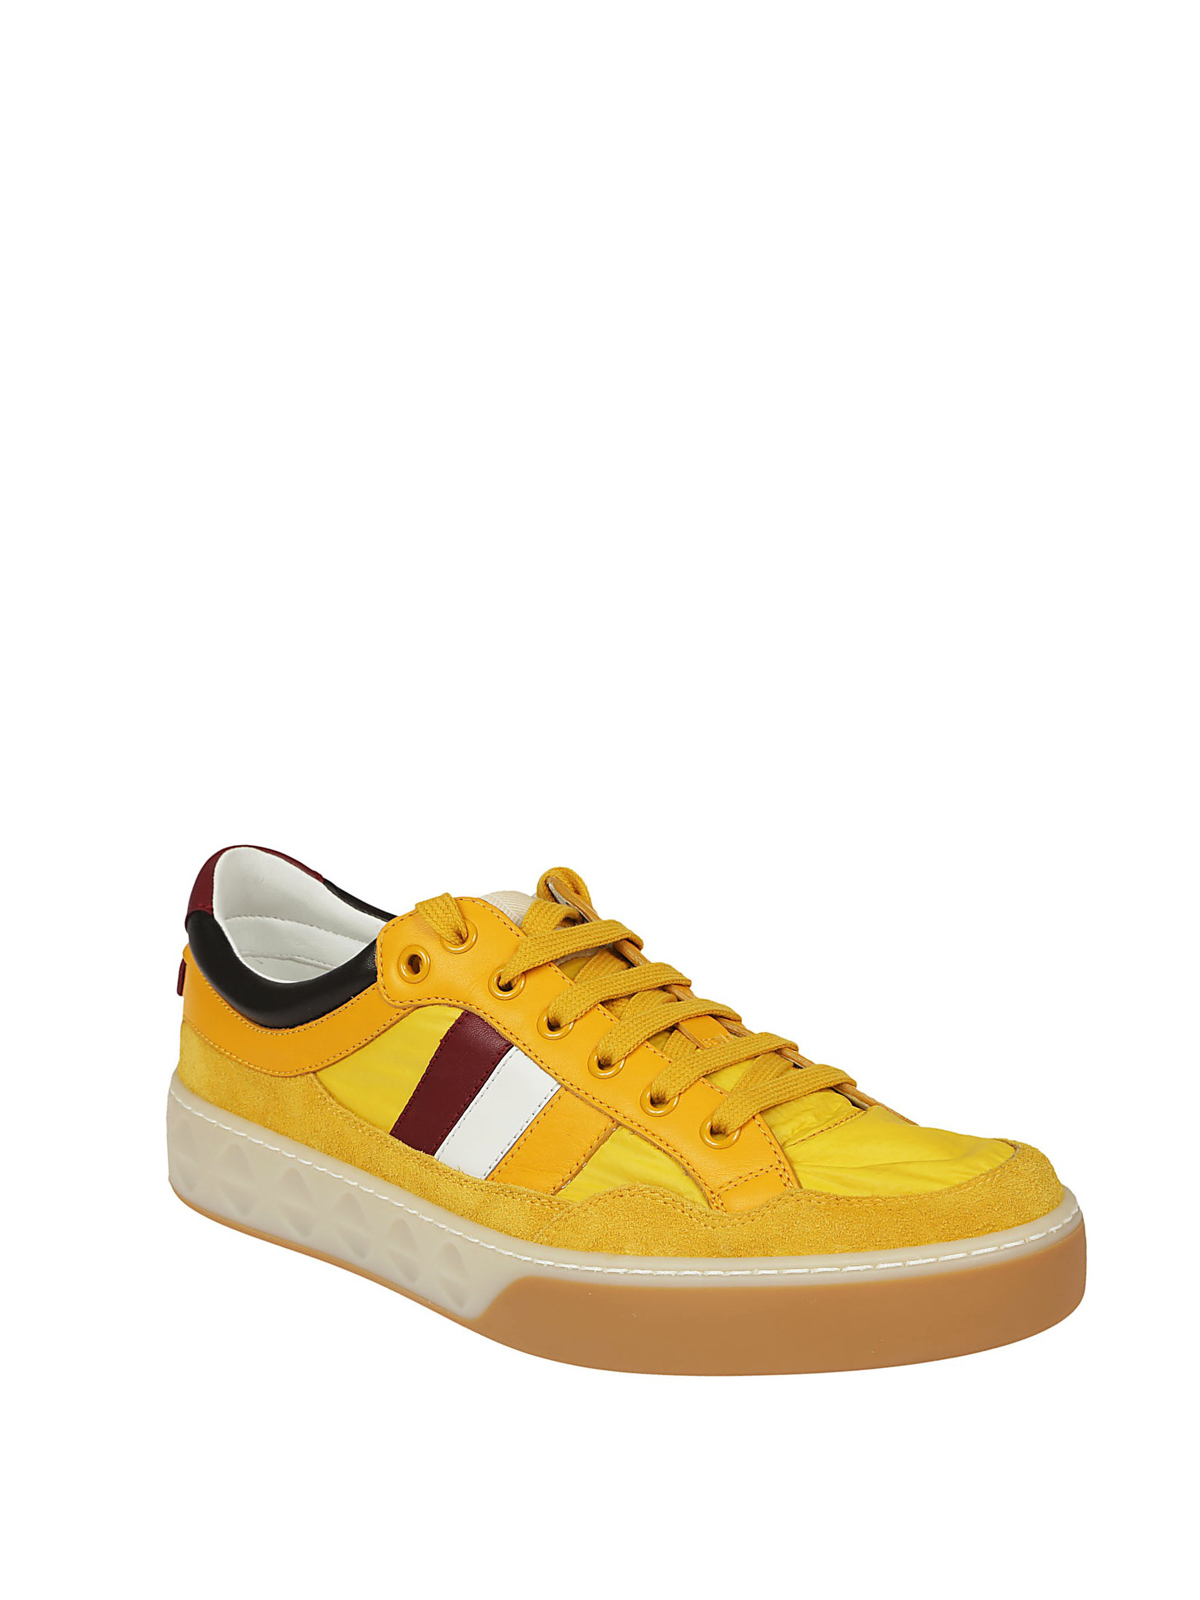 cba629eeb346 Gucci - Yellow multi fabric sneakers - trainers - 494761D6Z40G7666